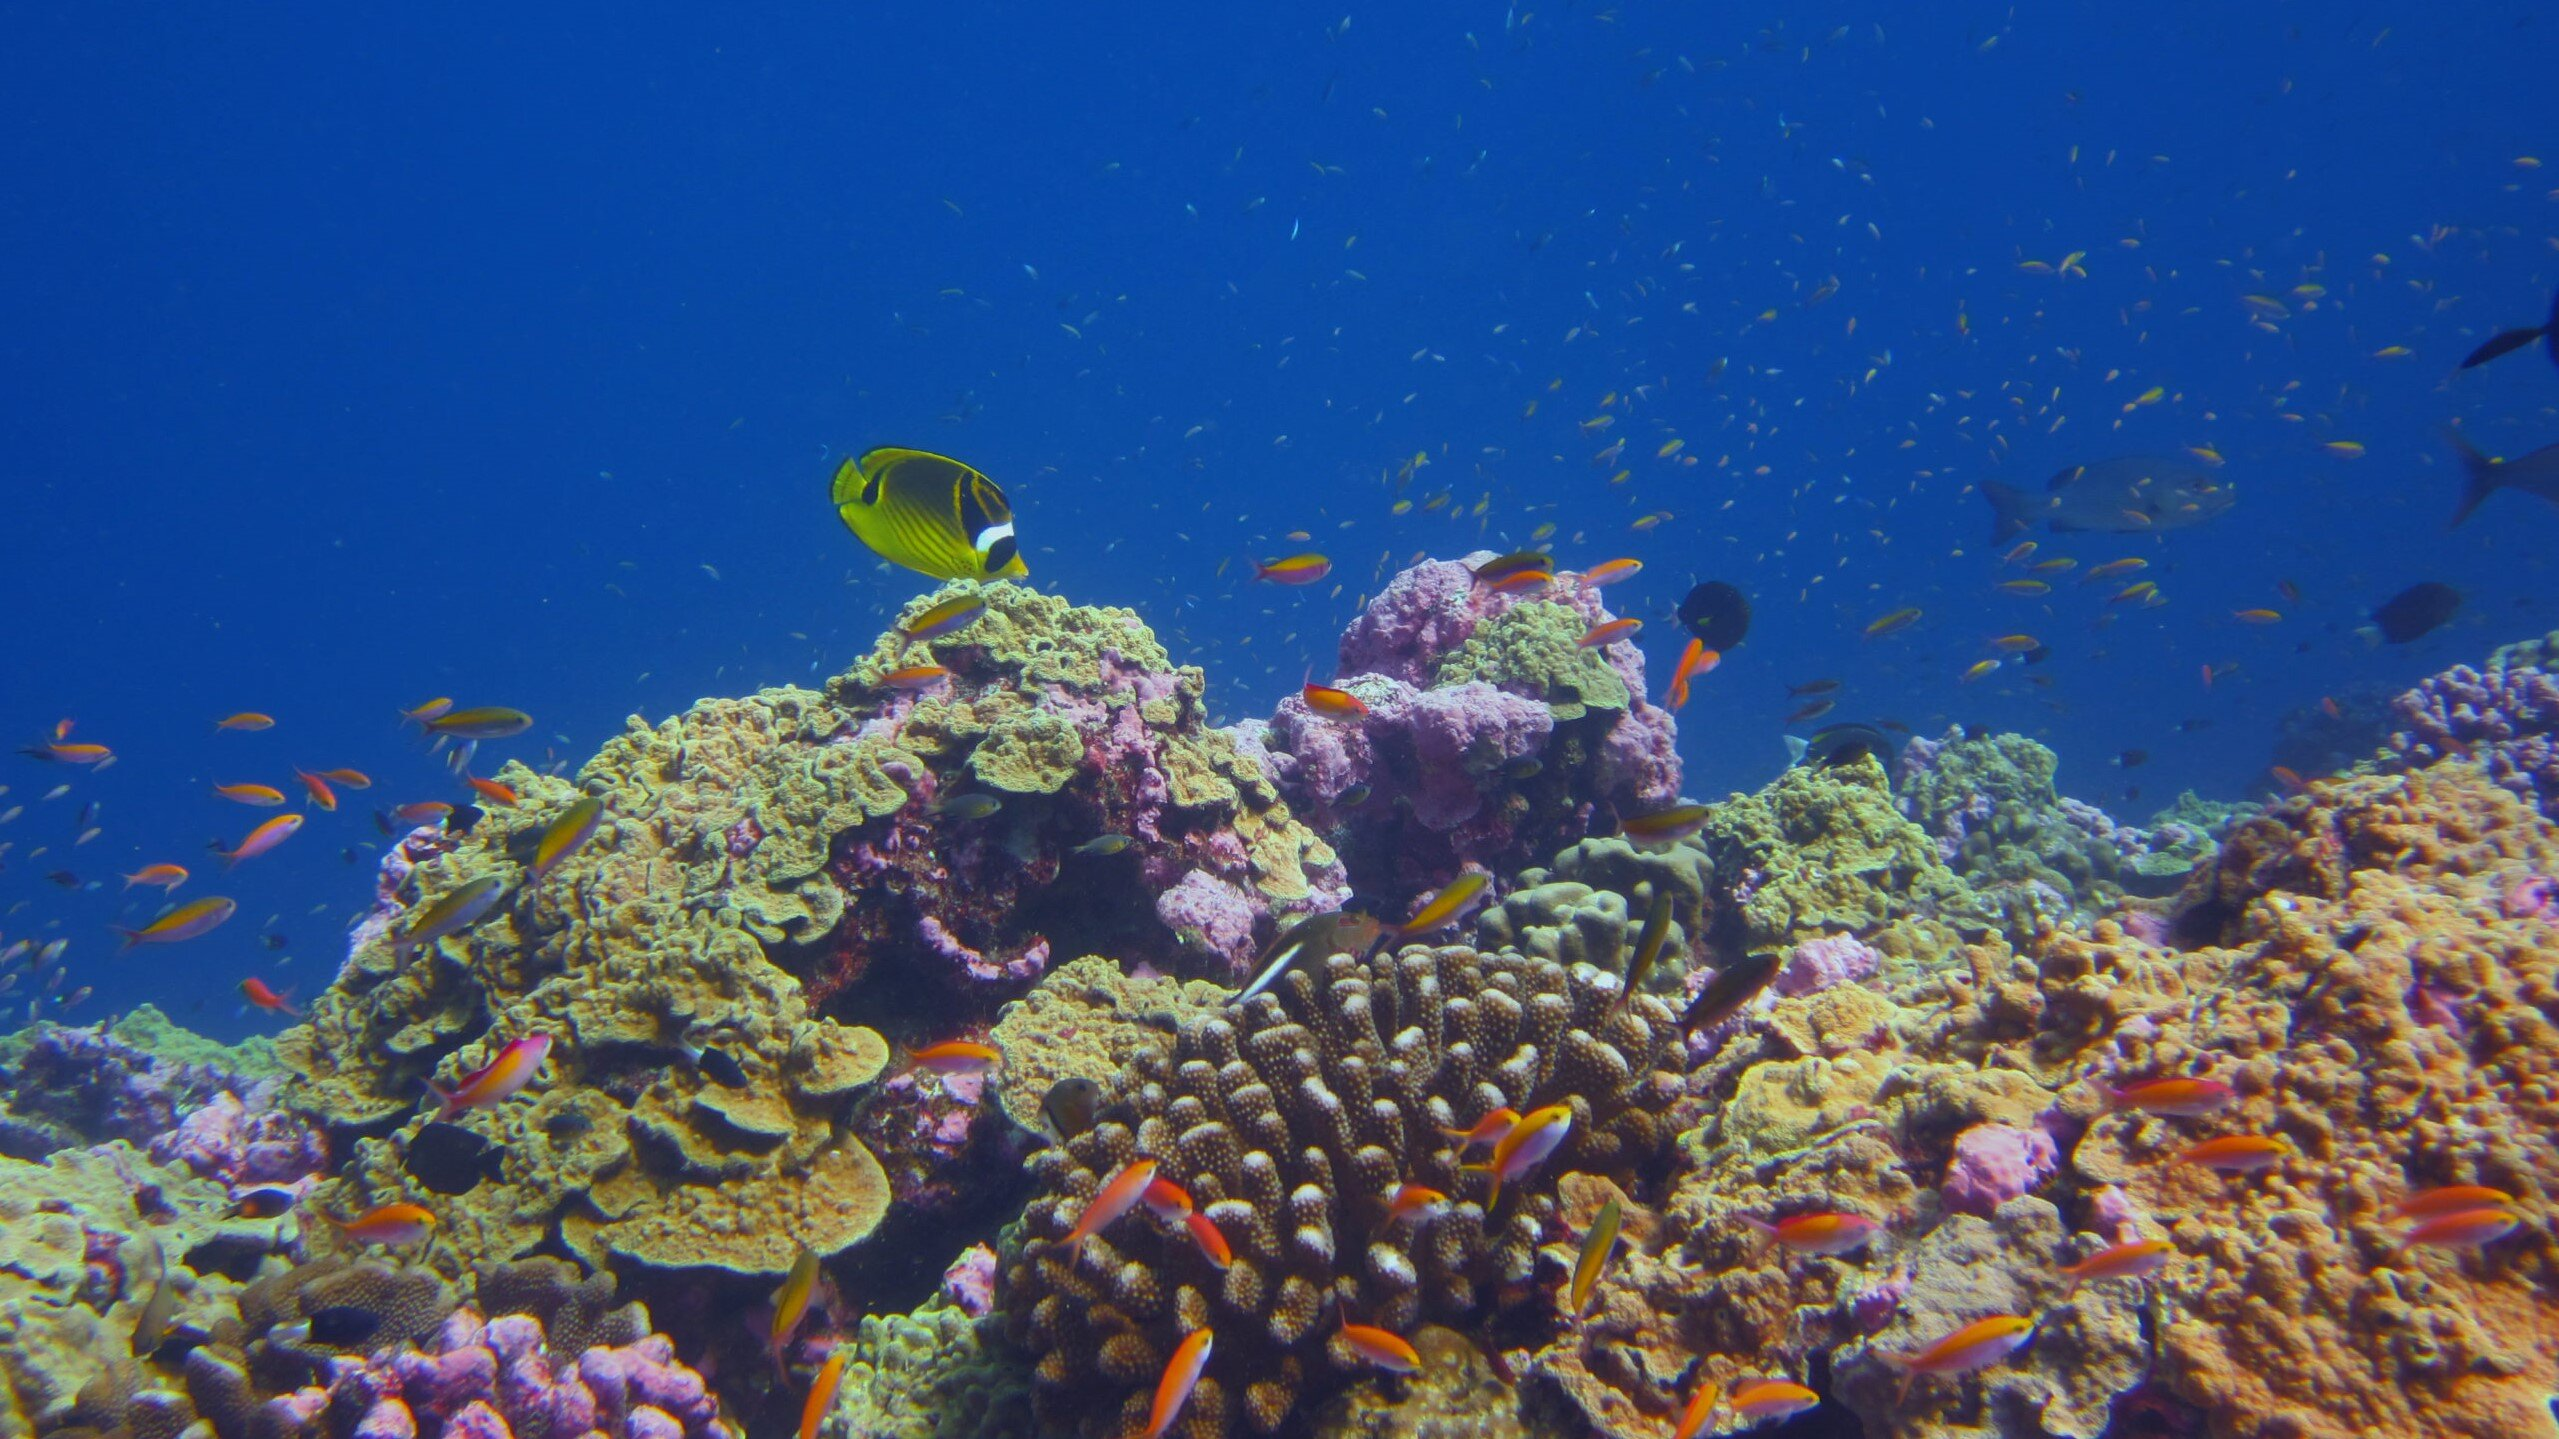 Some coral reefs are keeping pace with ocean warming